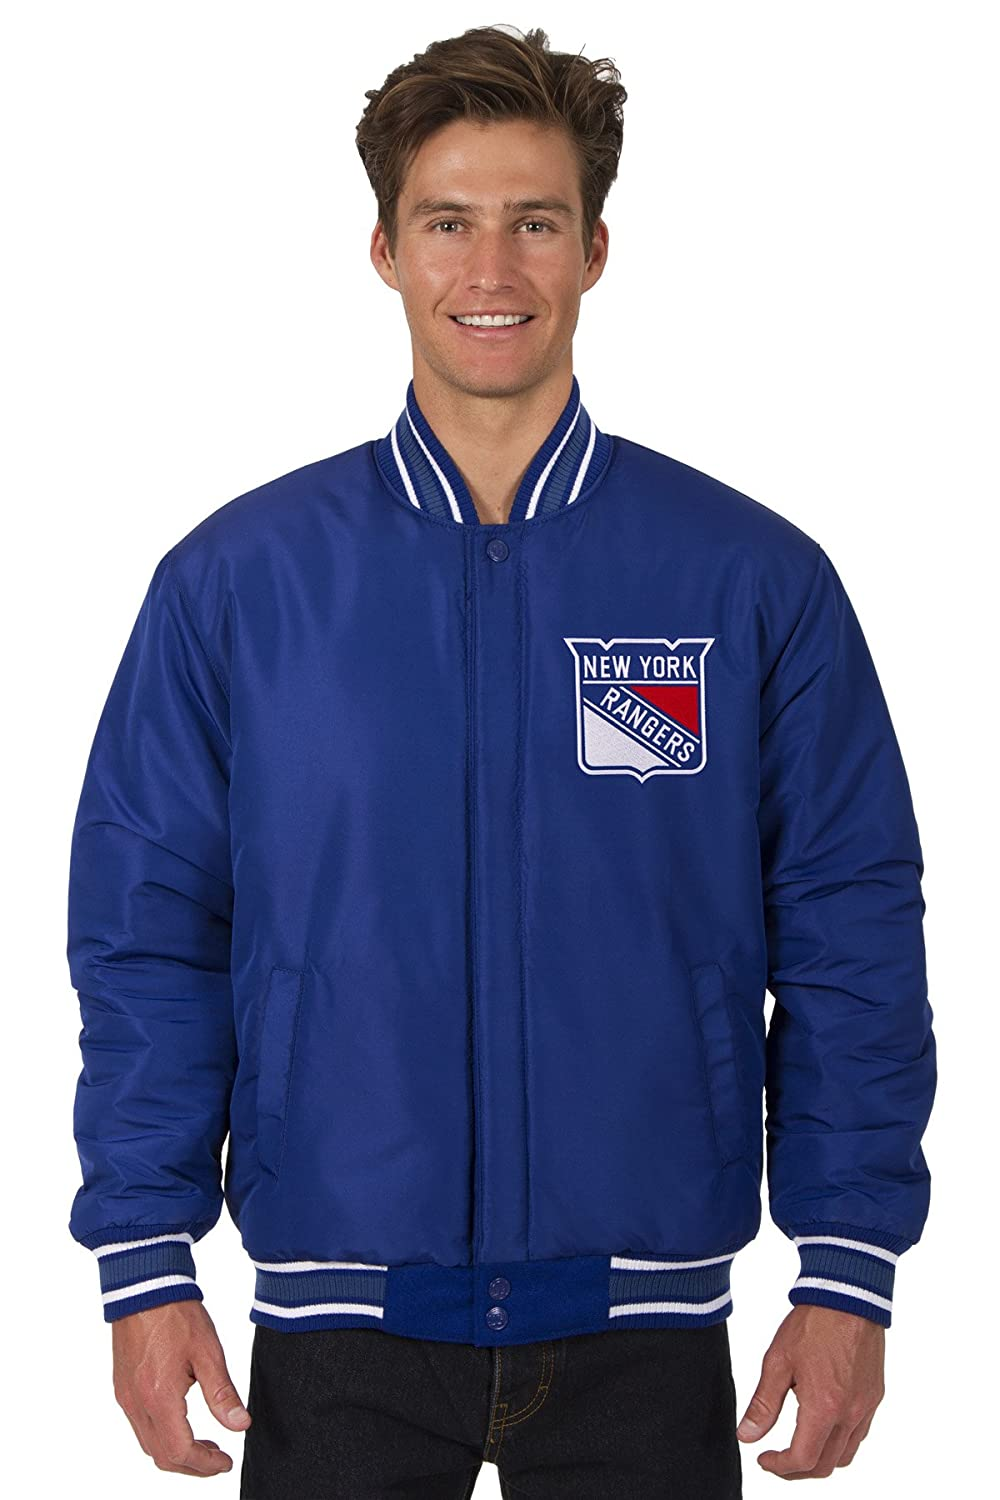 New York Rangers Hockey Jacket Wool Nylon Royal Blue Reversible Embroidered Logos